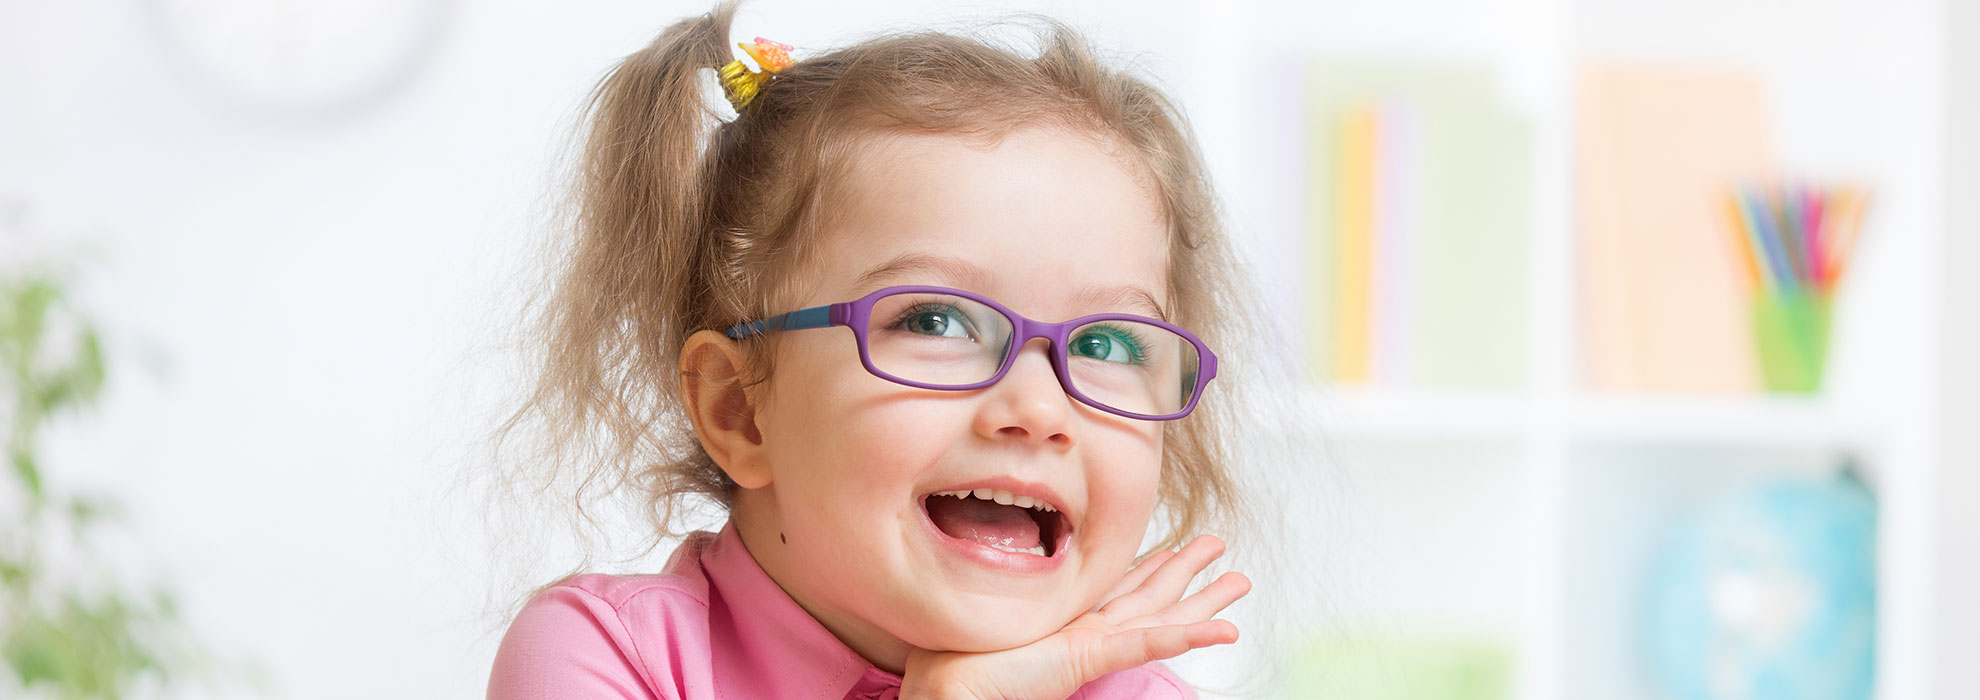 White pediatric girl wearing purple glasses smiling